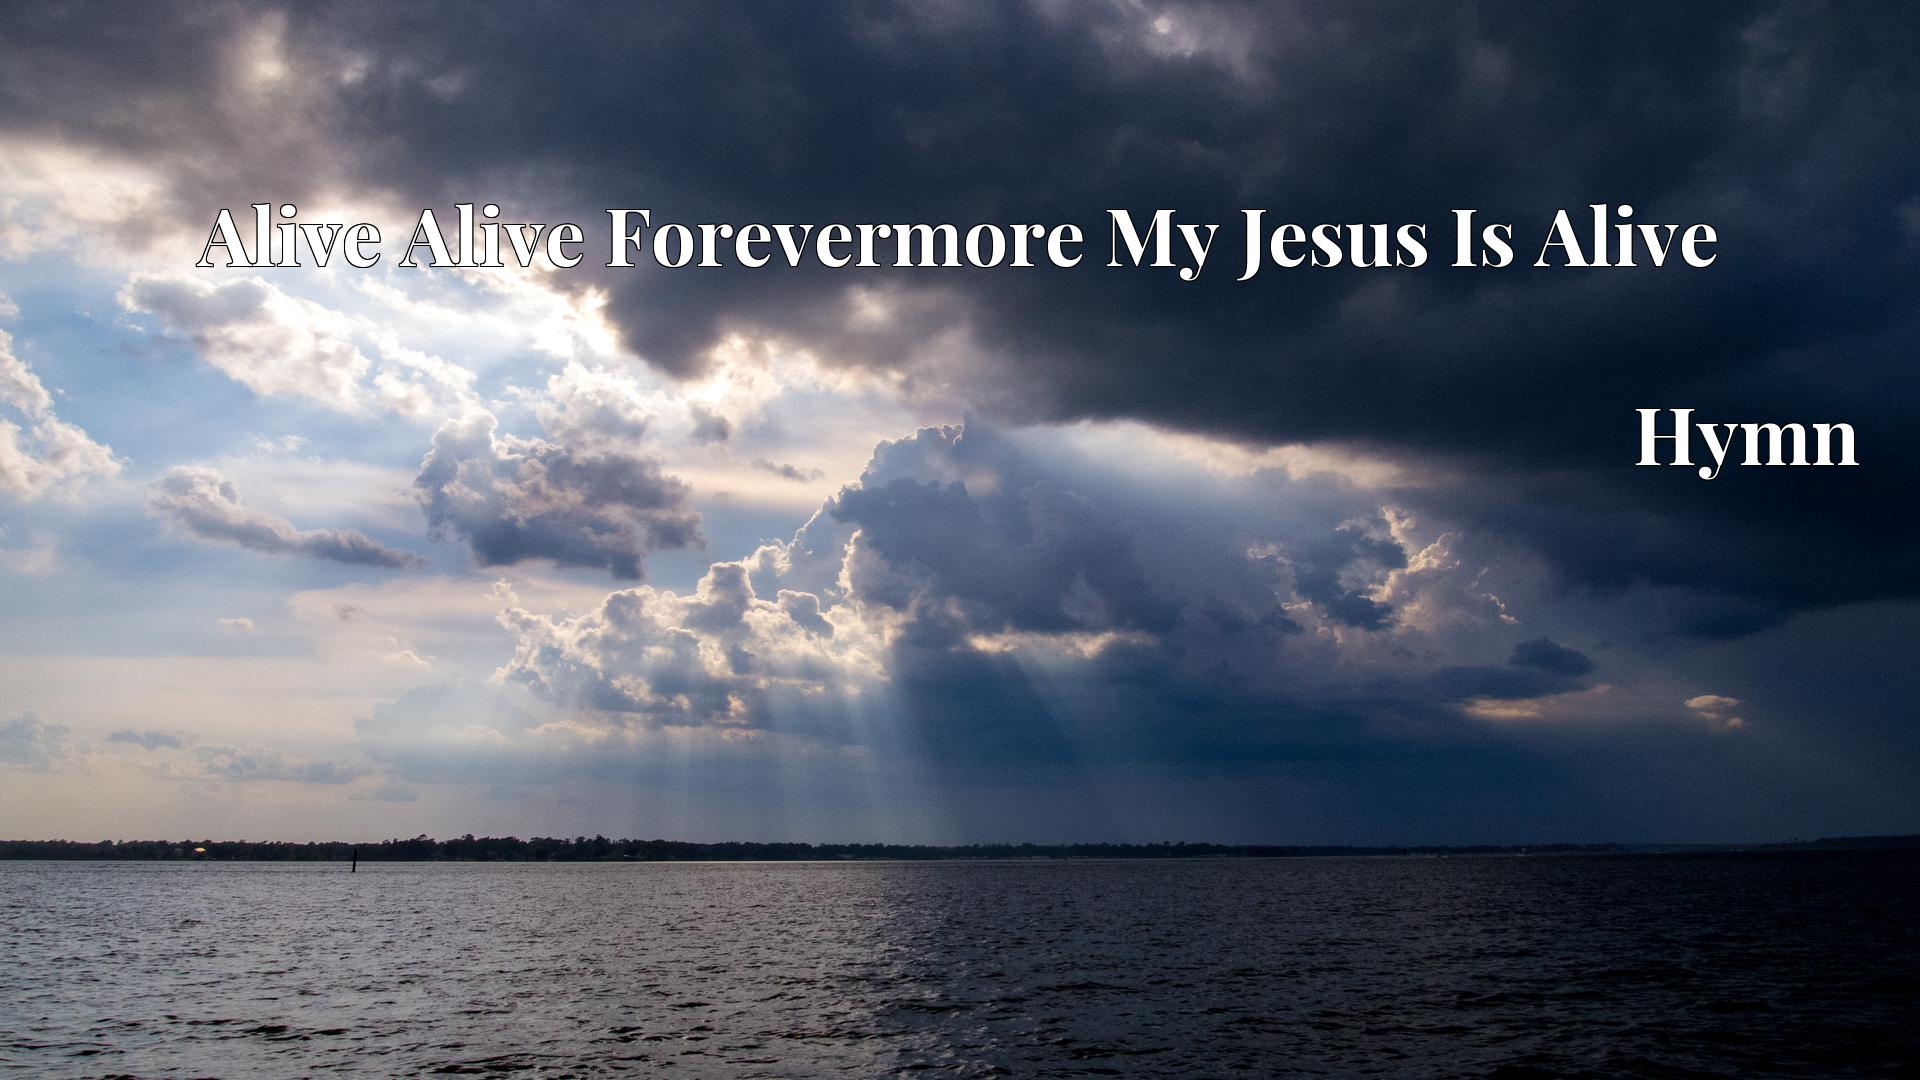 Alive Alive Forevermore My Jesus Is Alive - Hymn